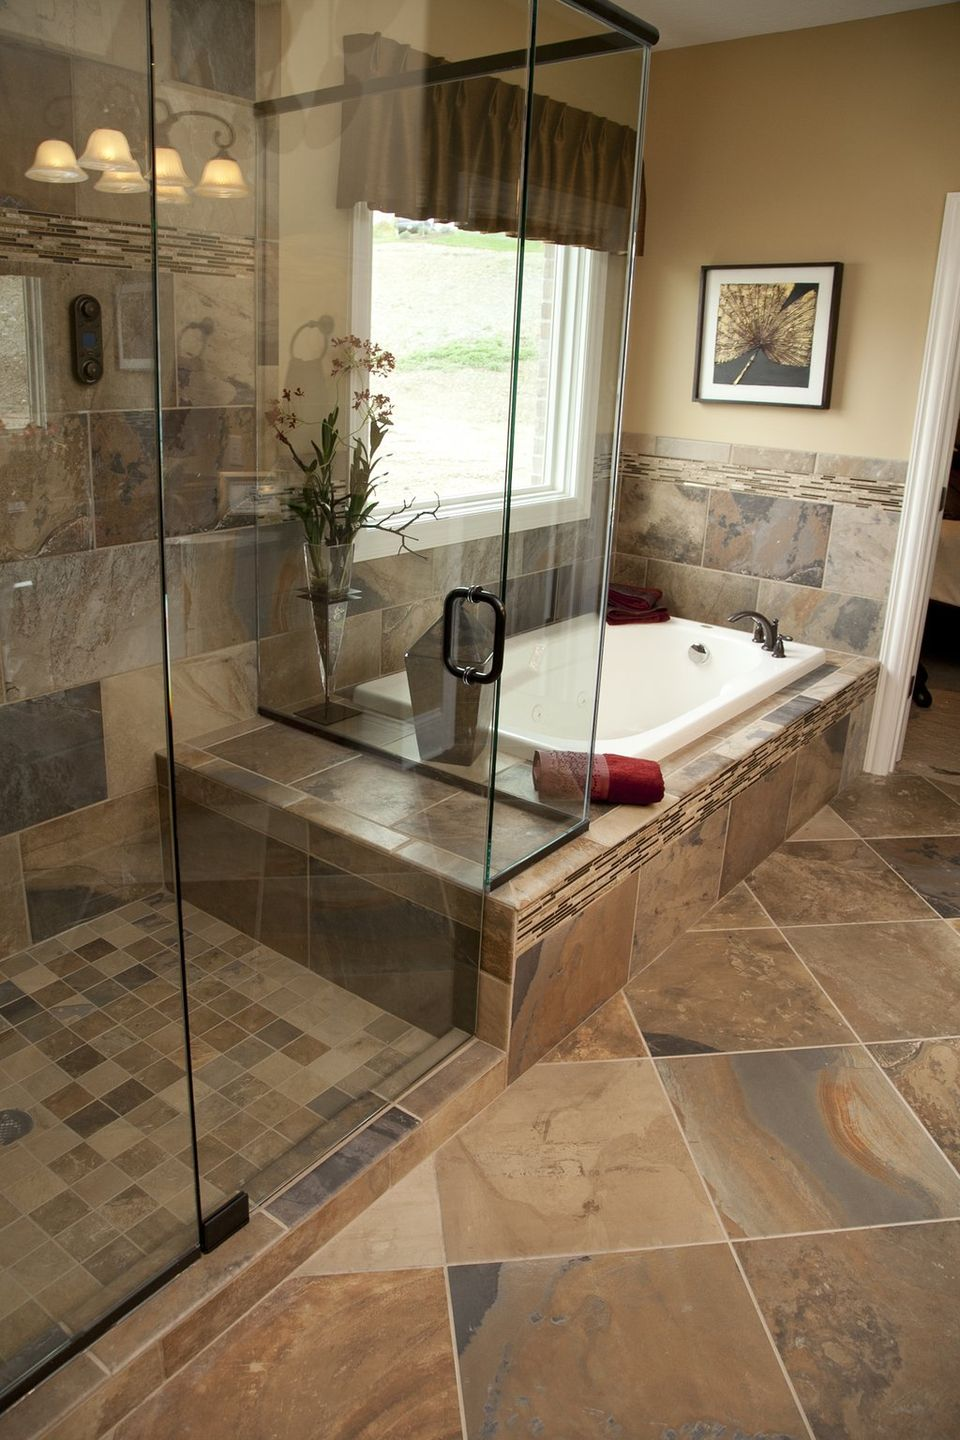 33 stunning pictures and ideas of natural stone bathroom for Master bathroom design ideas